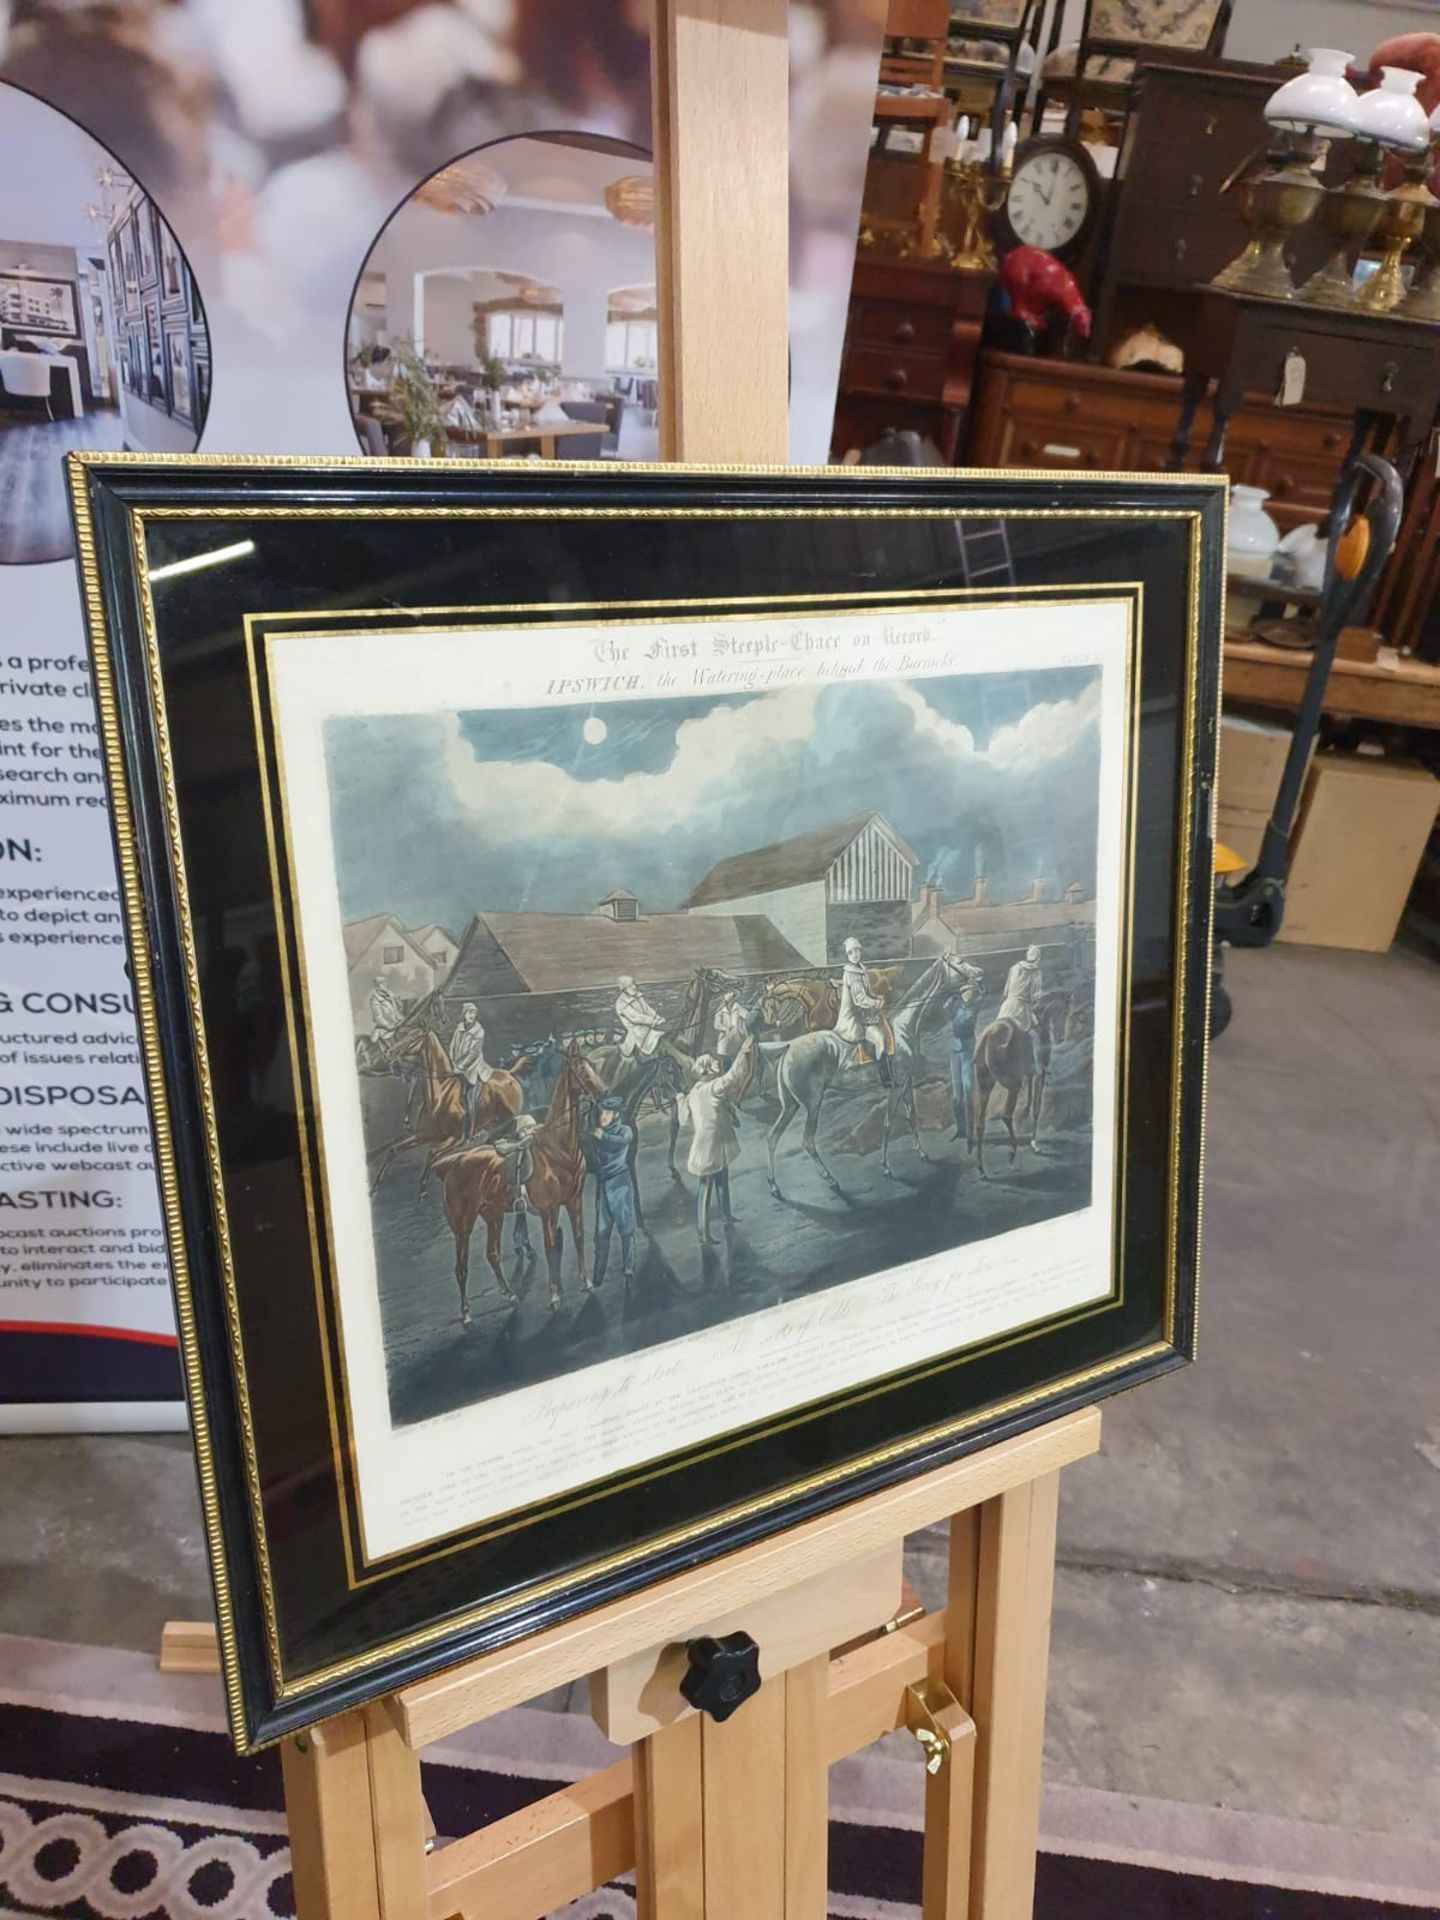 Framed vintage print .The First Steeplechase on Record - Ipswich, the watering place behind the - Image 3 of 6